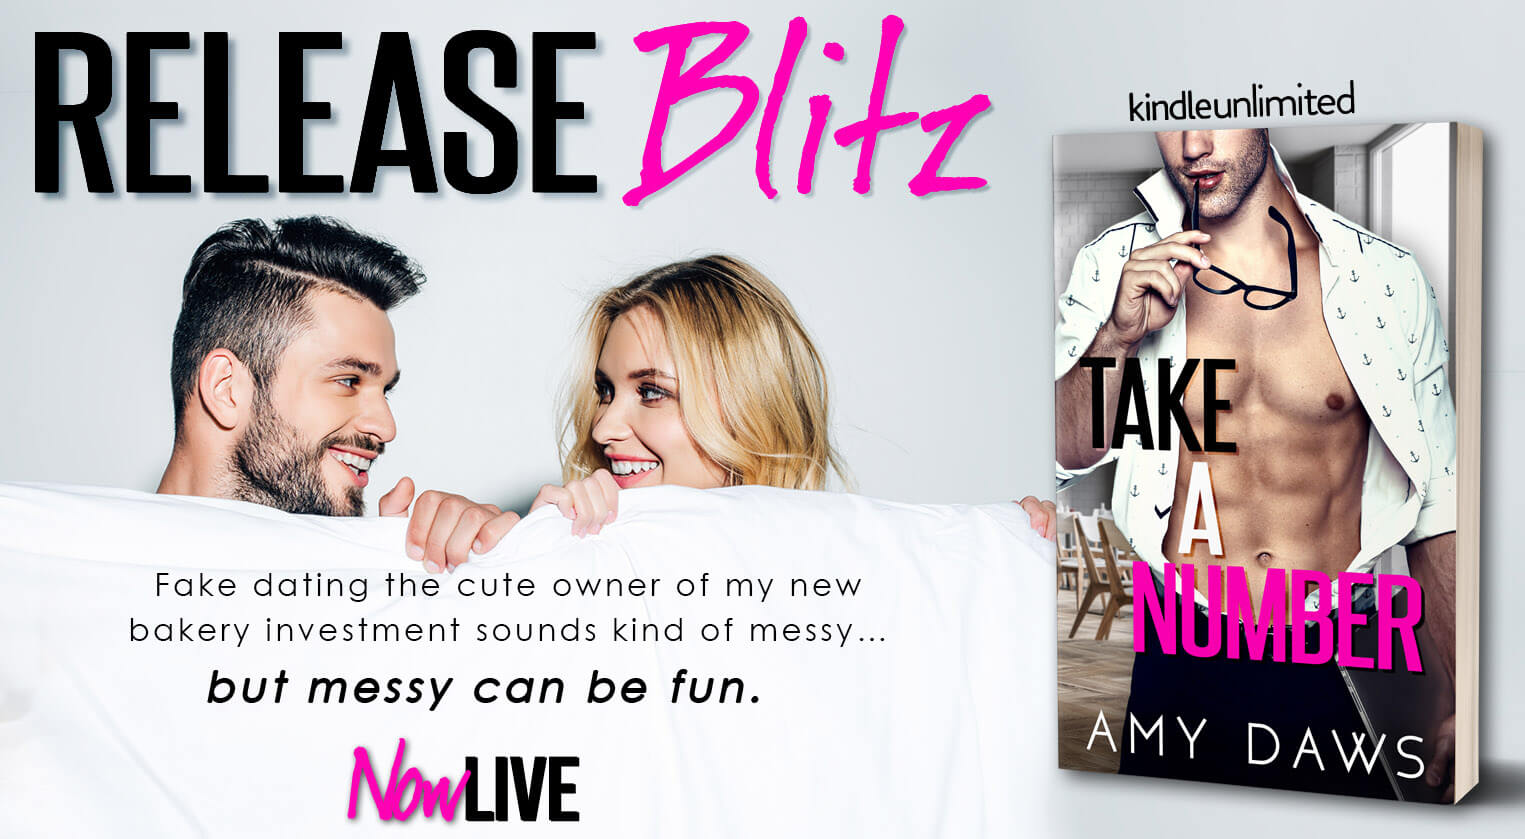 Release Blitz Review with Giveaway:  Take a Number (Wait With Me #4) by Amy Daws